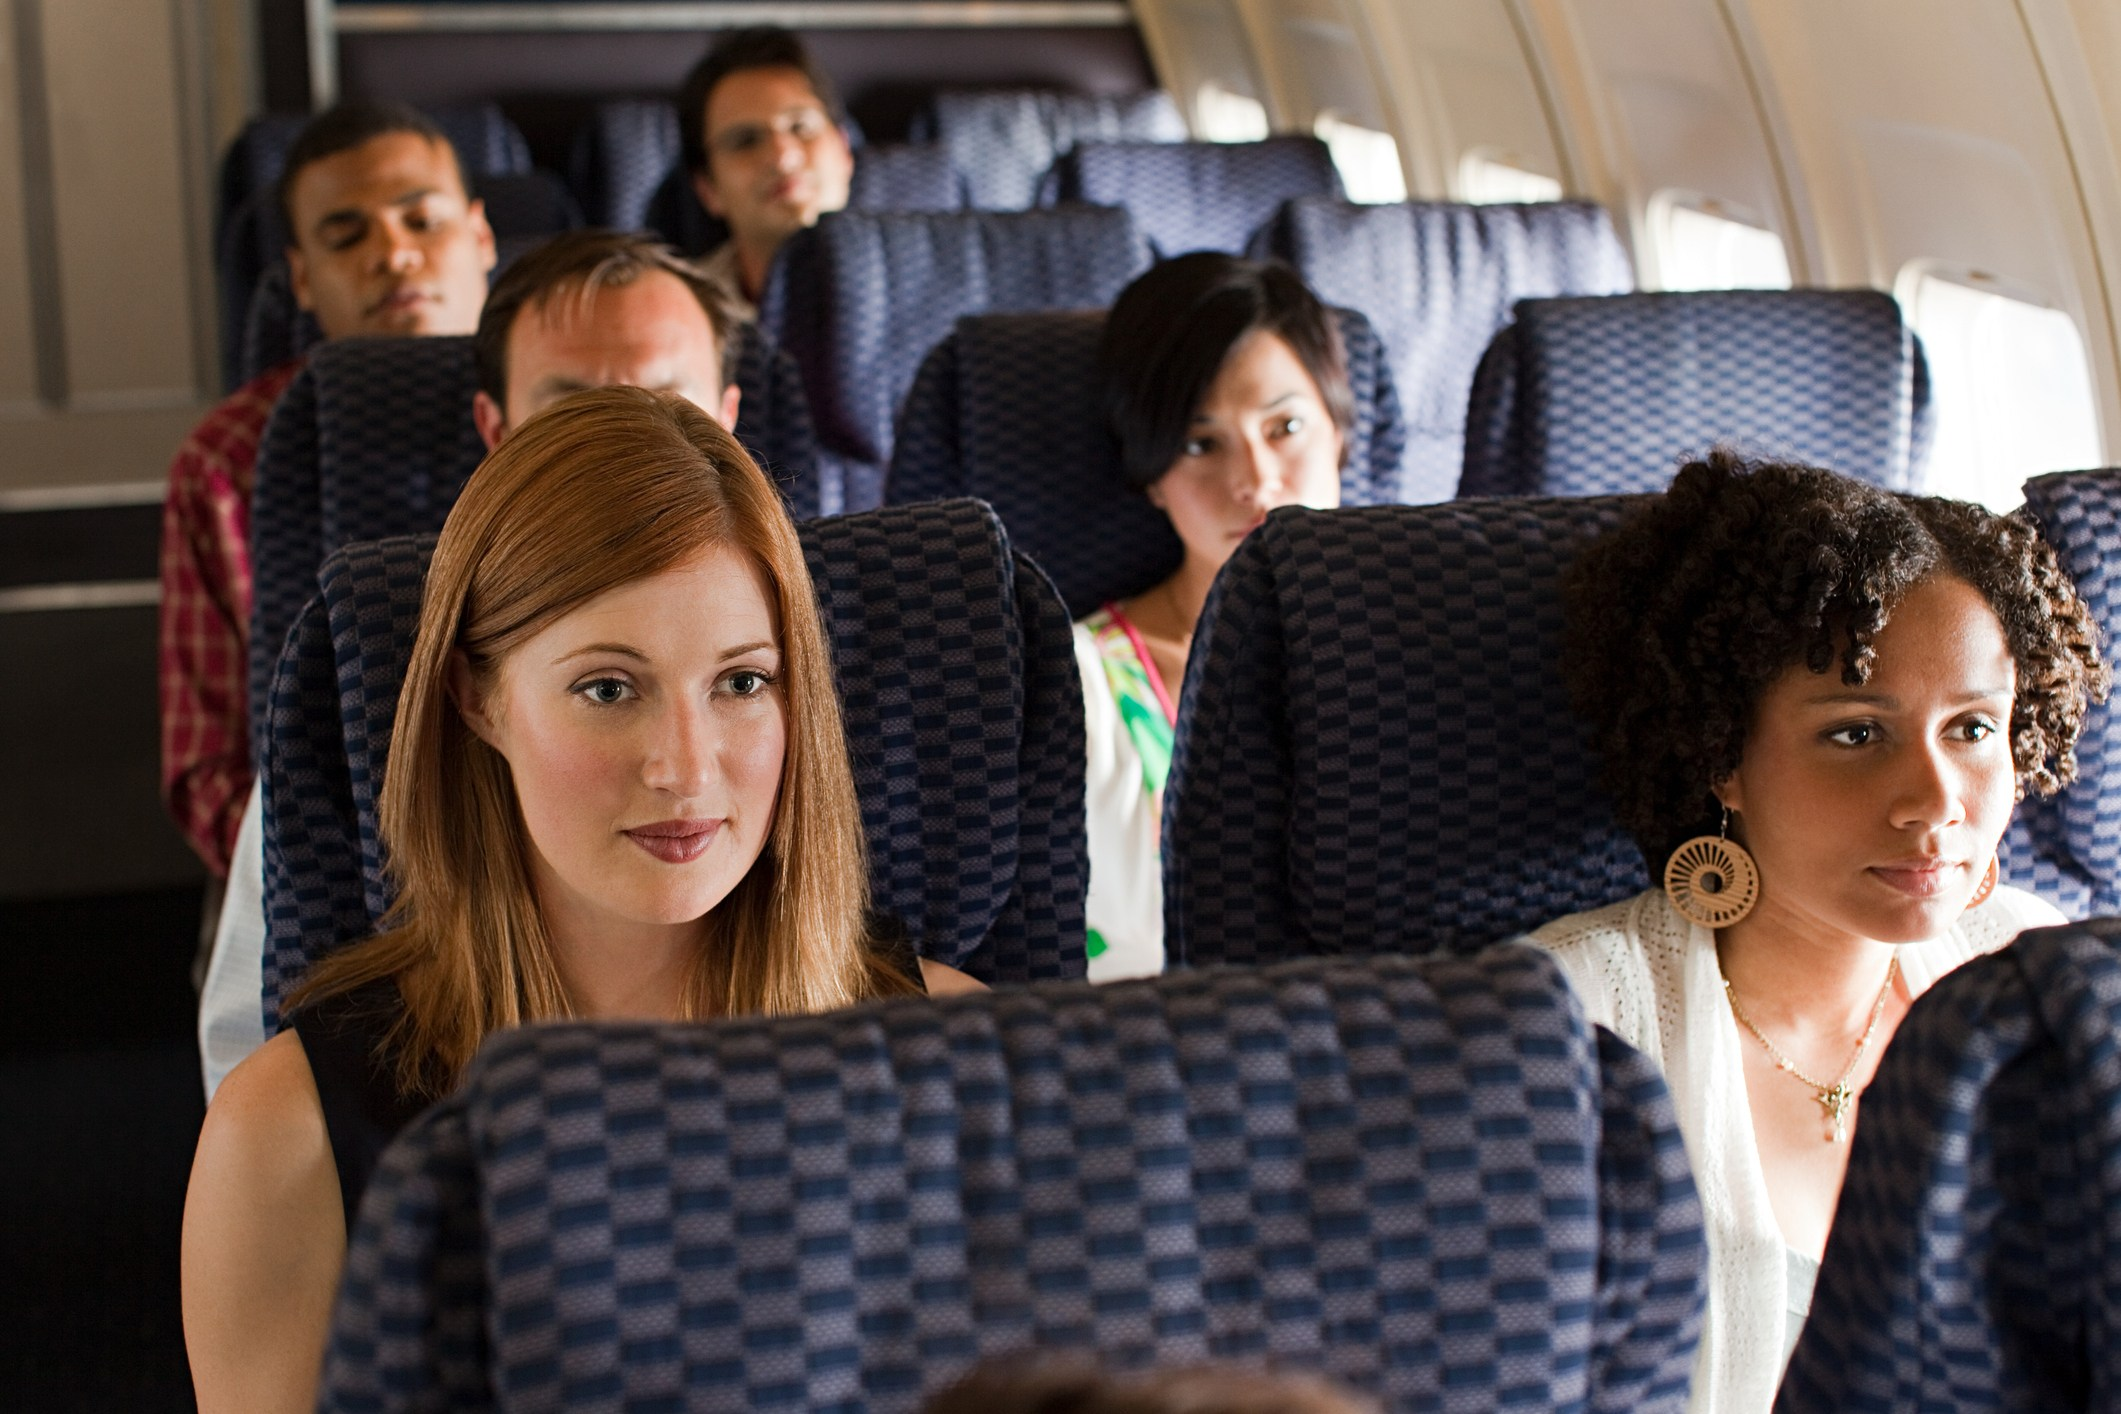 Women sitting on an airplane